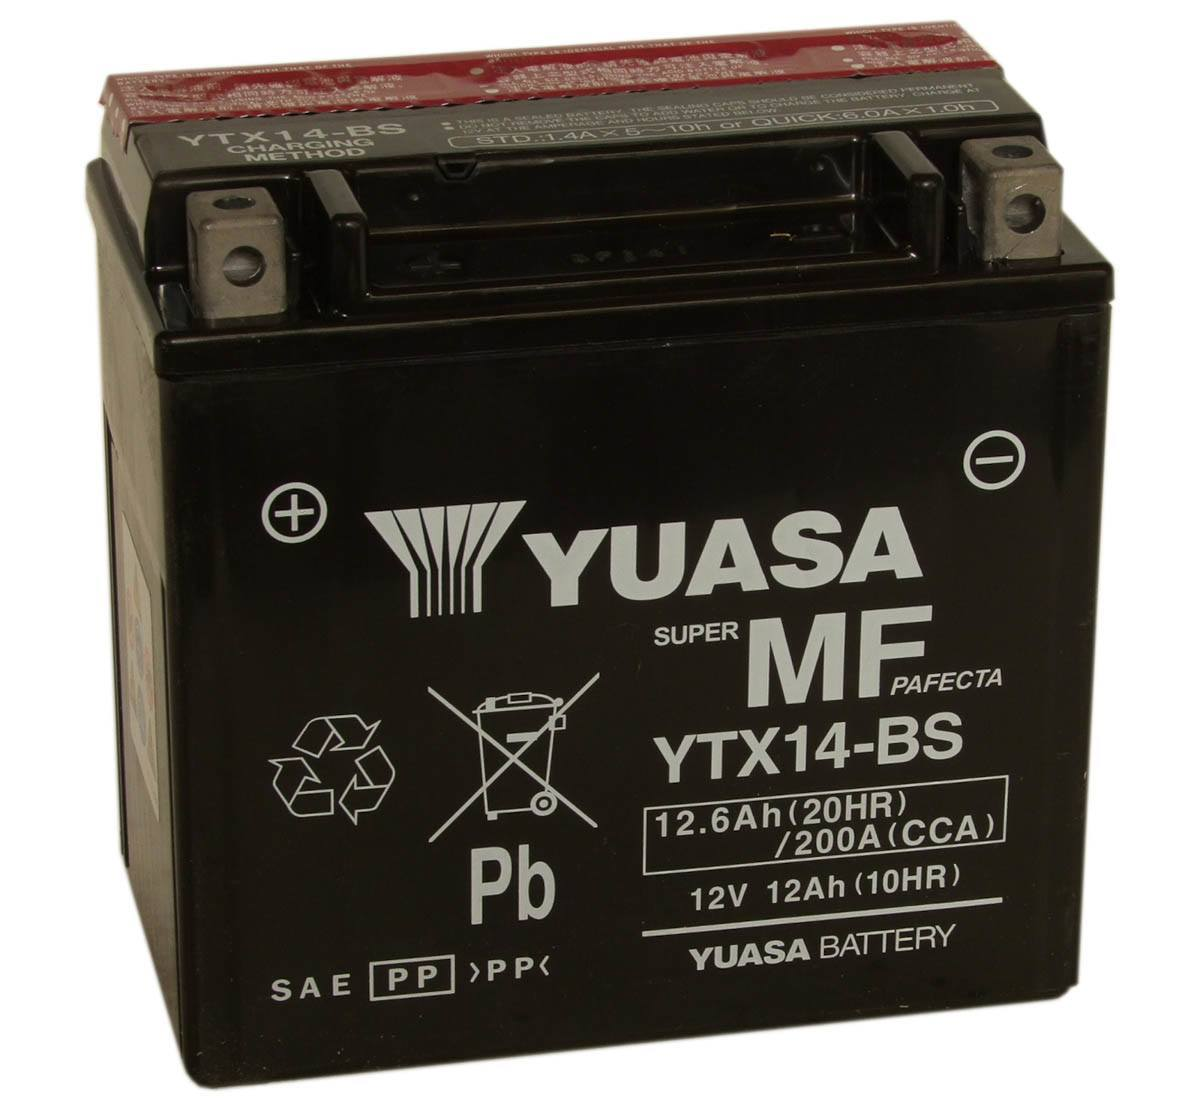 Yuasa YTX14-BS 12V Motorcycle Battery